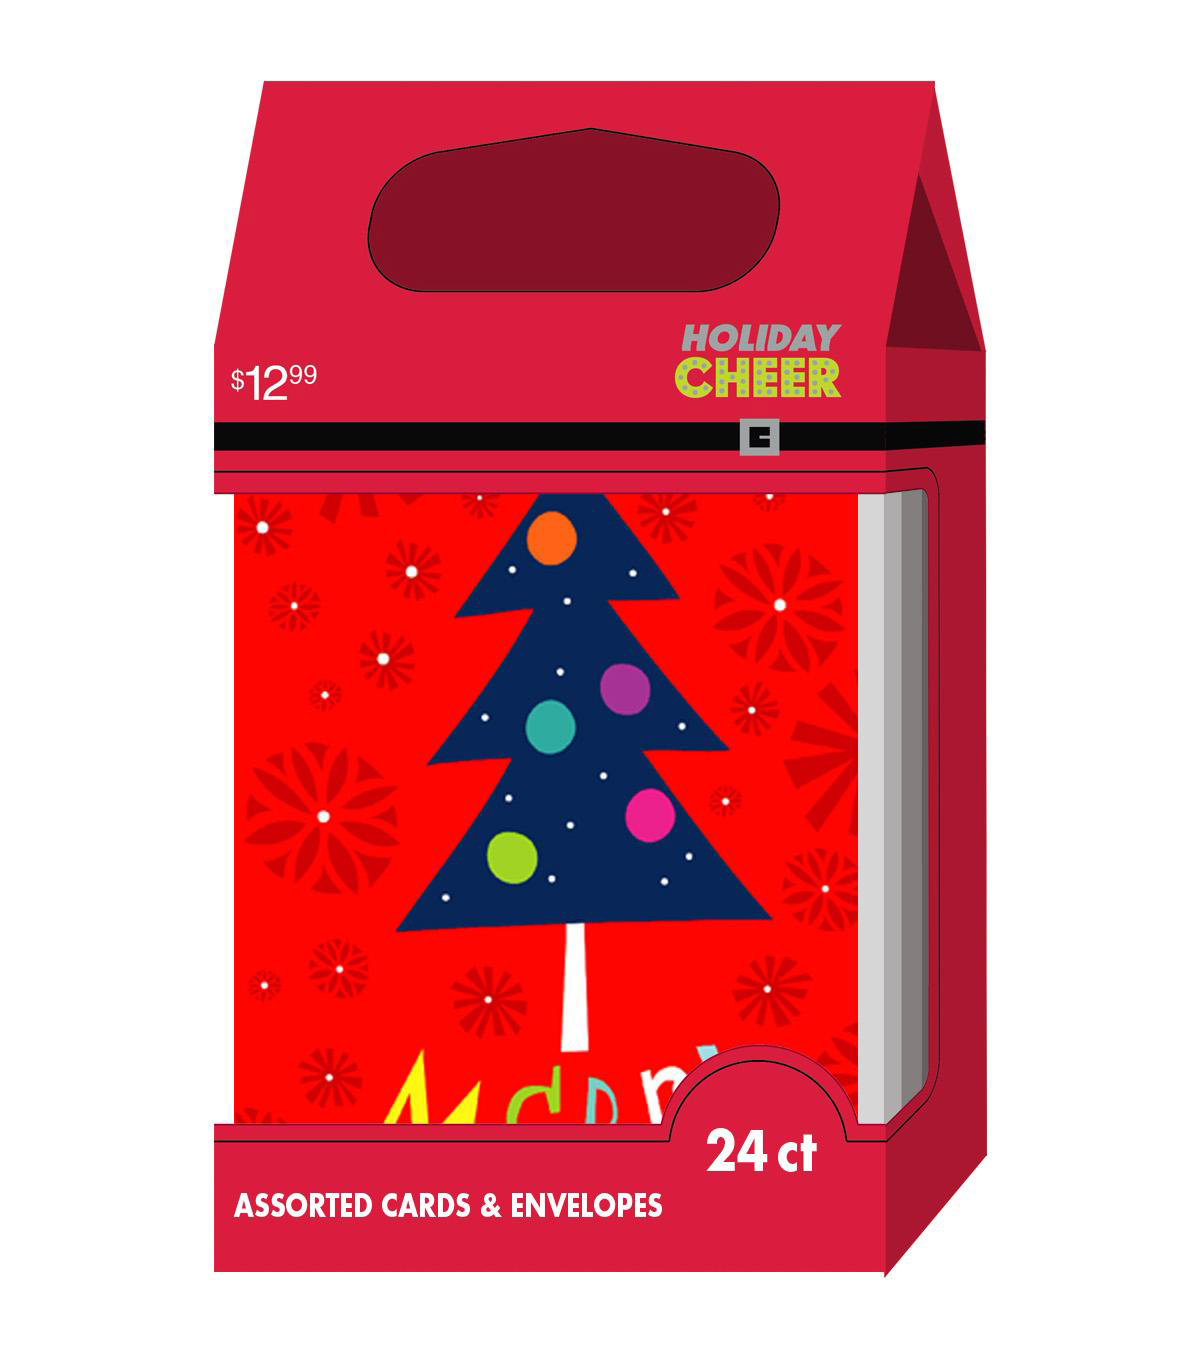 Holiday Cheer $12.99 Hi Count Whimsey Cards